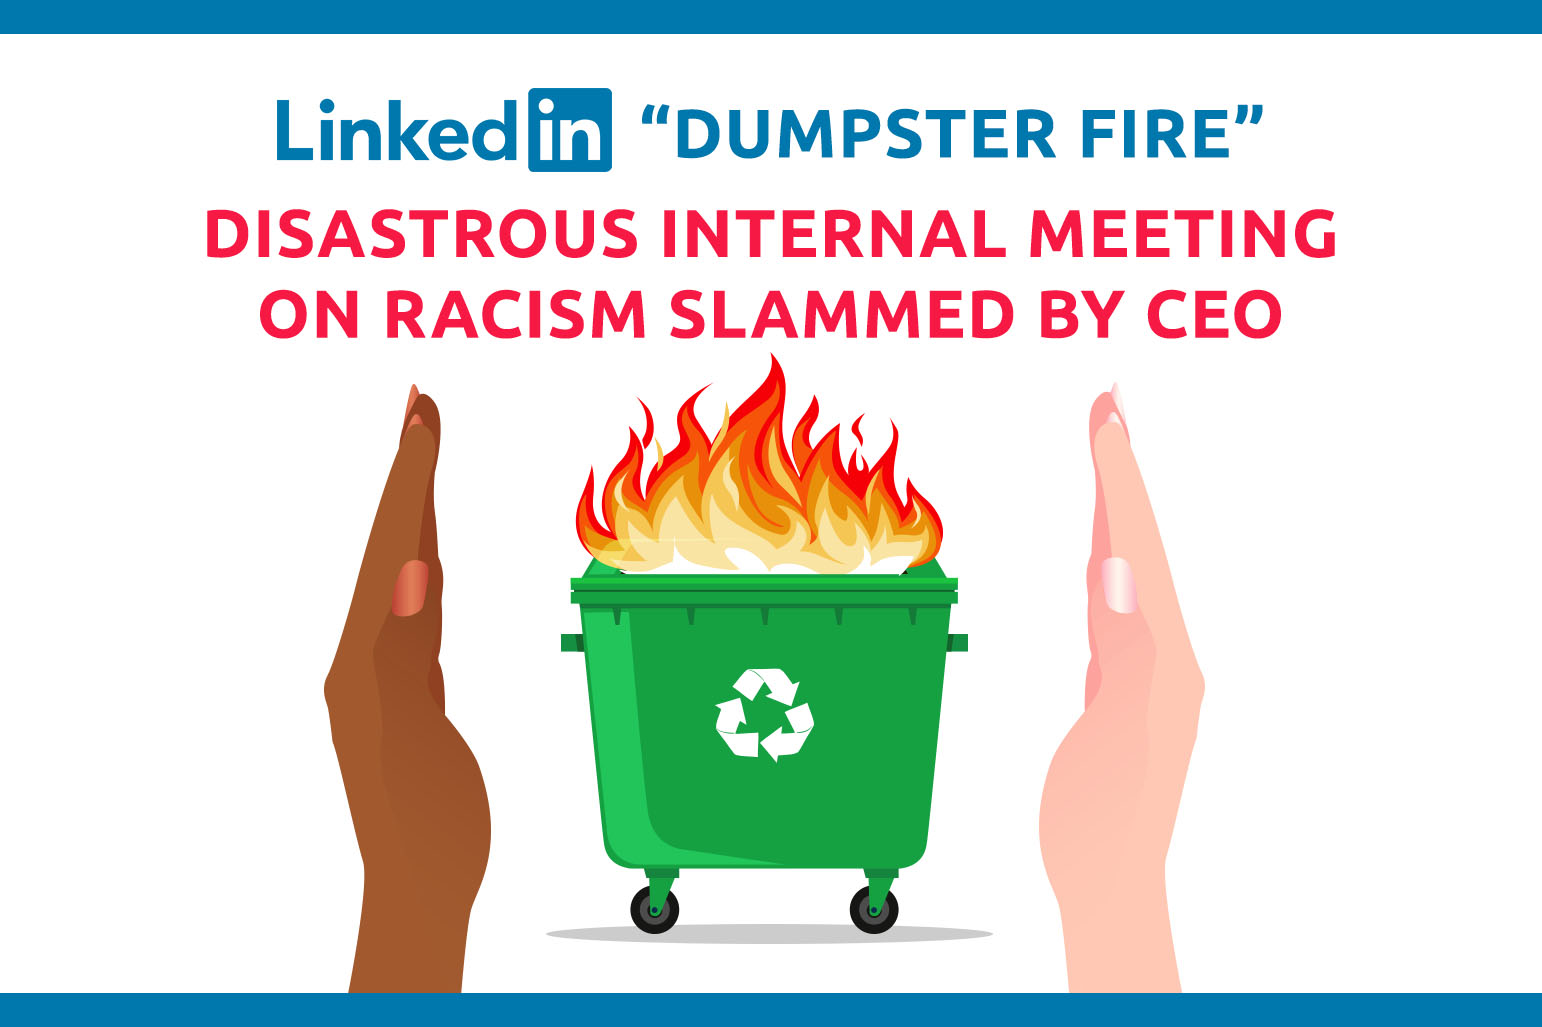 LinkedIn 'Dumpster Fire': Disastrous Internal Meeting On Racism Slammed By CEO